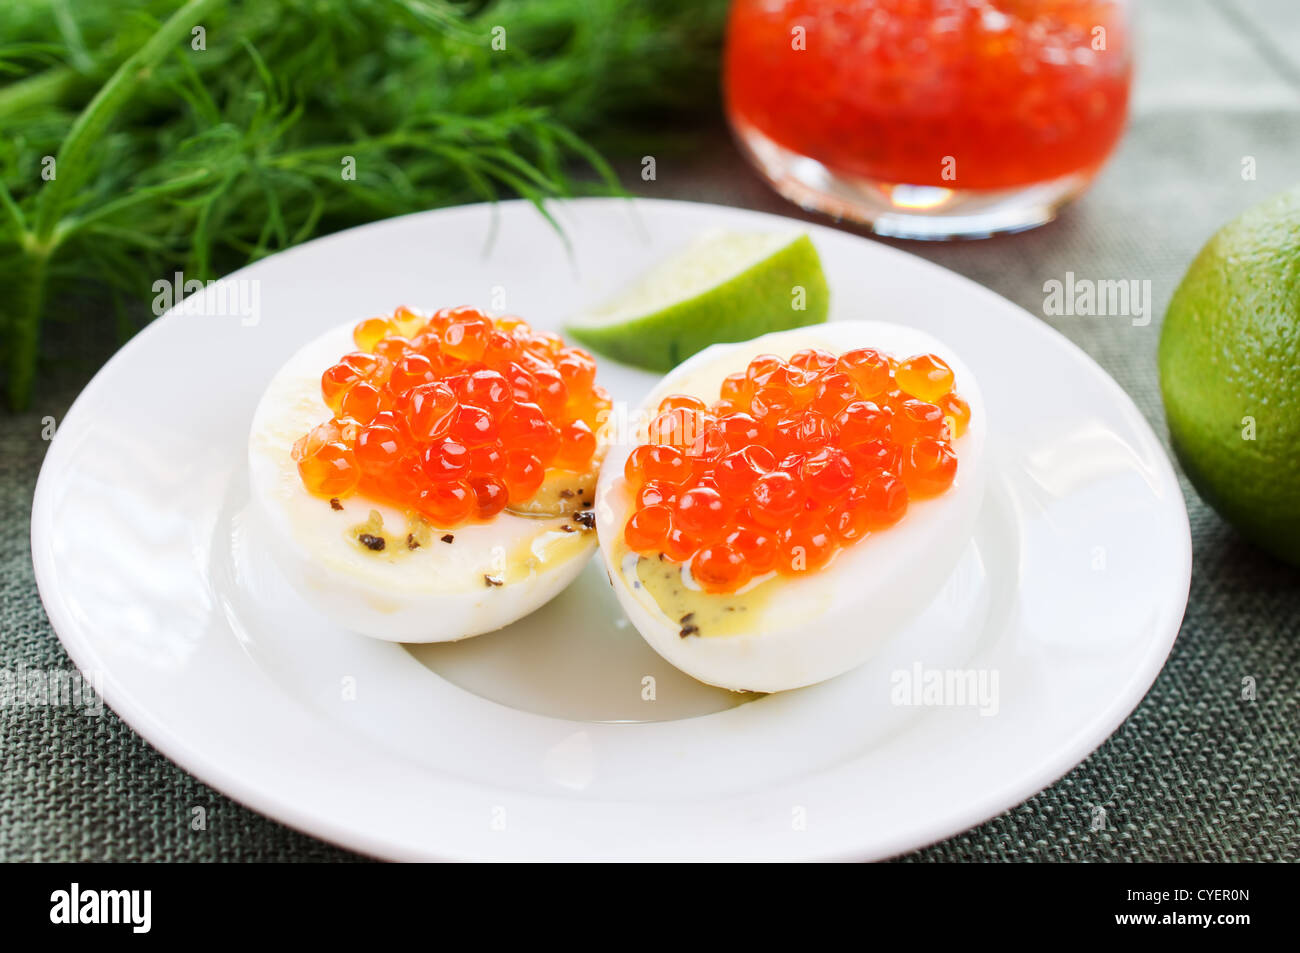 Eggs and caviar on white dish close up - Stock Image